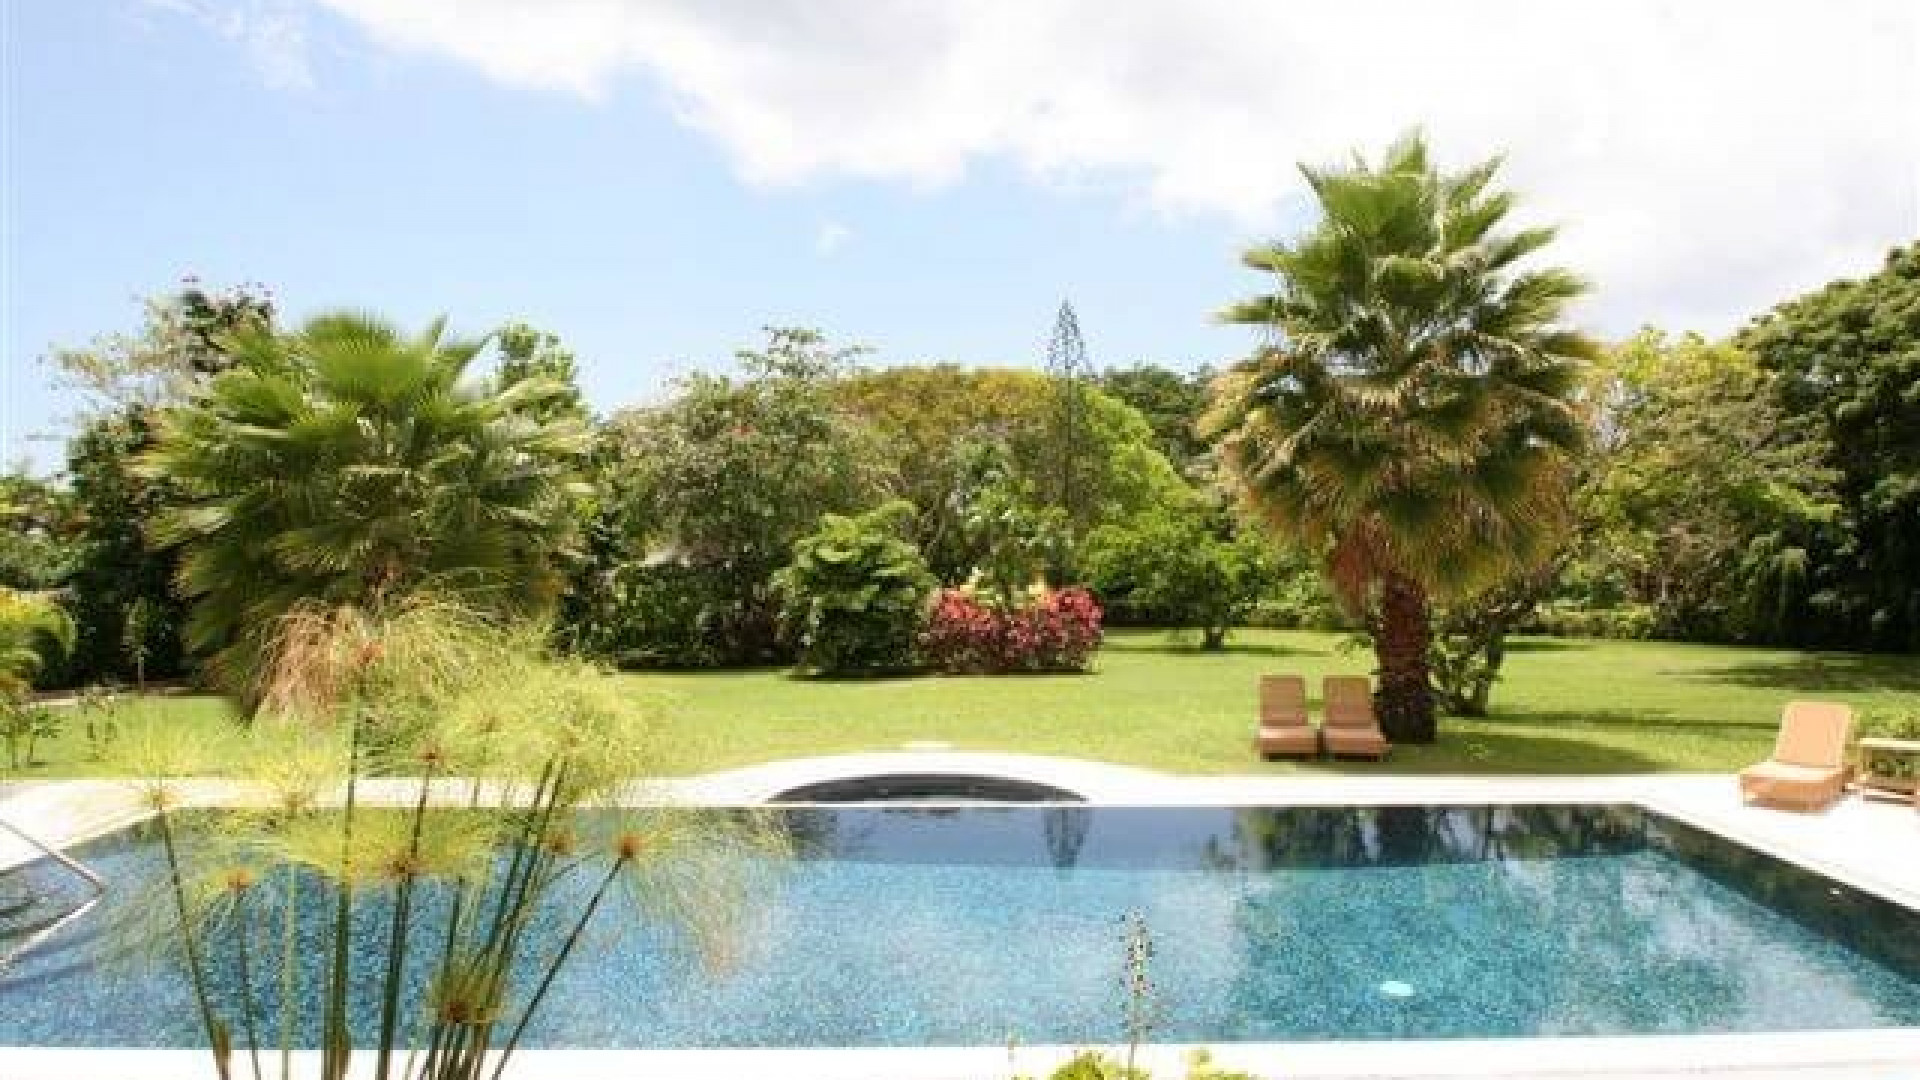 Pool in Garden of 6 Bedroom Villa in Sandy Lane with Private Pool & Tropical Garden